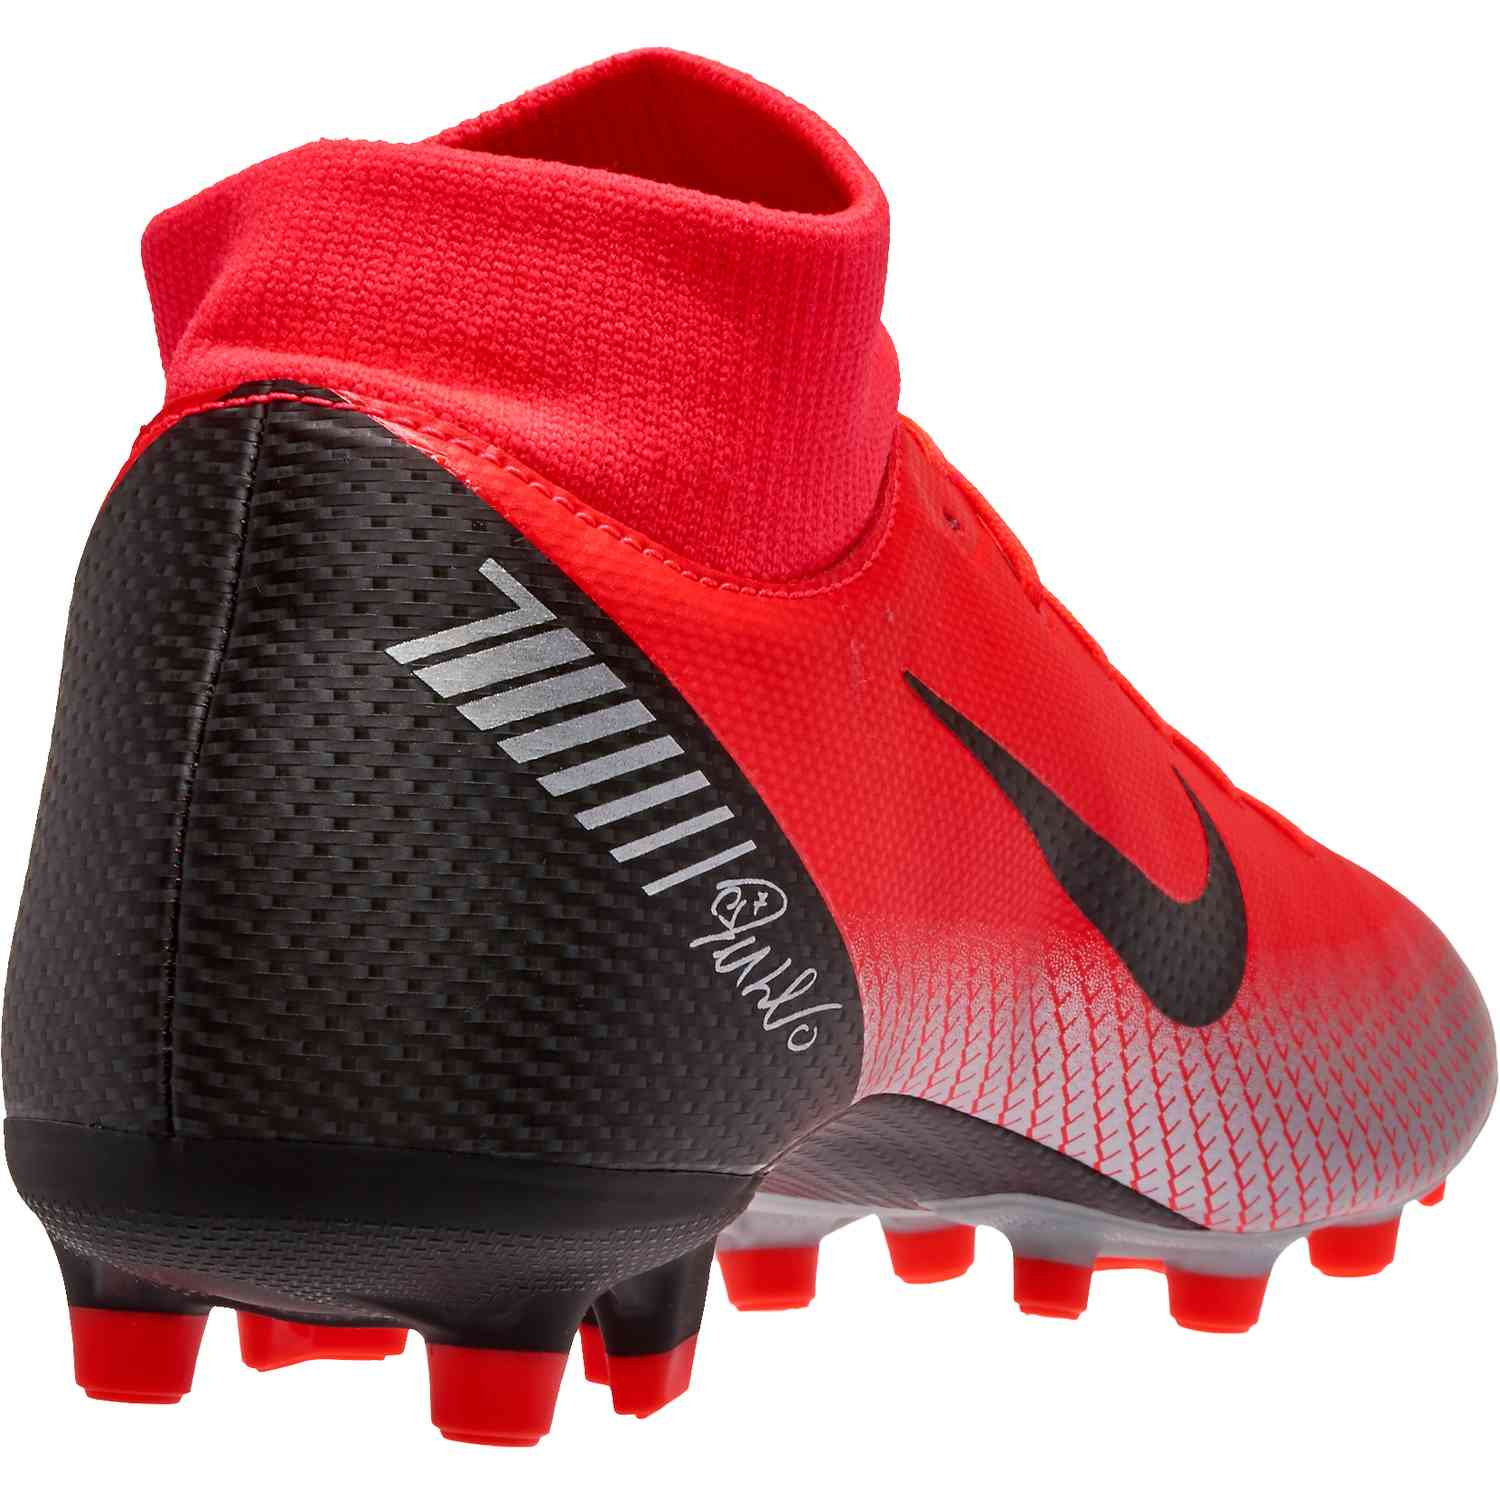 99070834f Nike CR7 Mercurial Superfly 6 Academy FG - Chapter 7 - SoccerPro